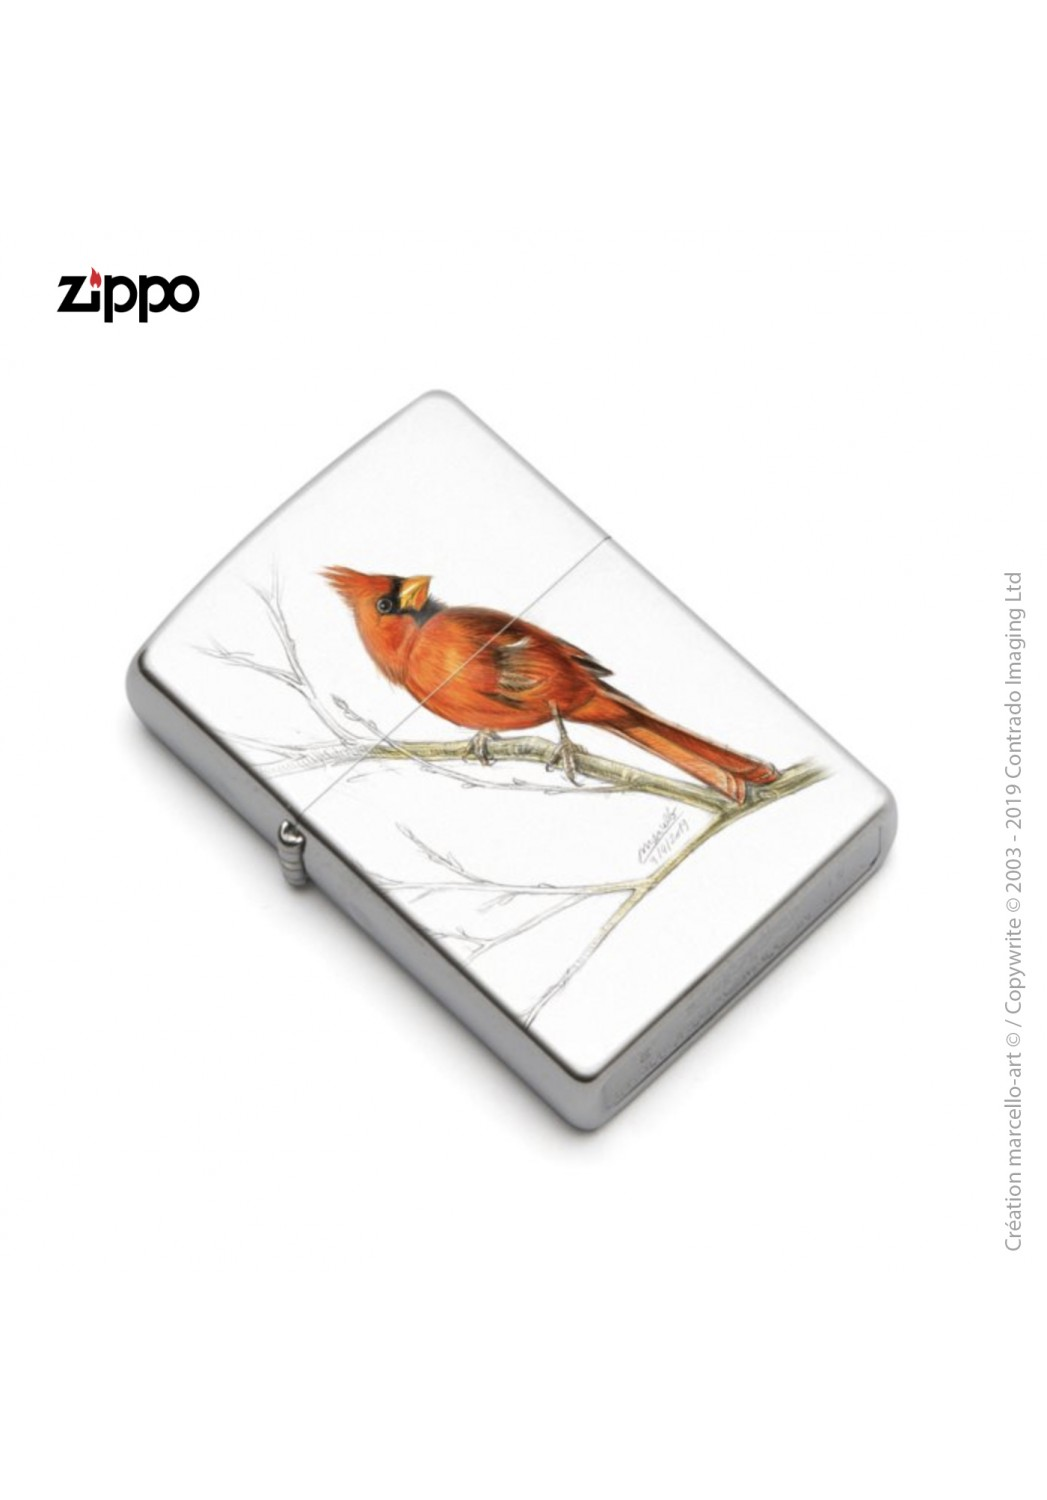 Marcello-art: Decoration accessoiries Zippo 393 cardinal